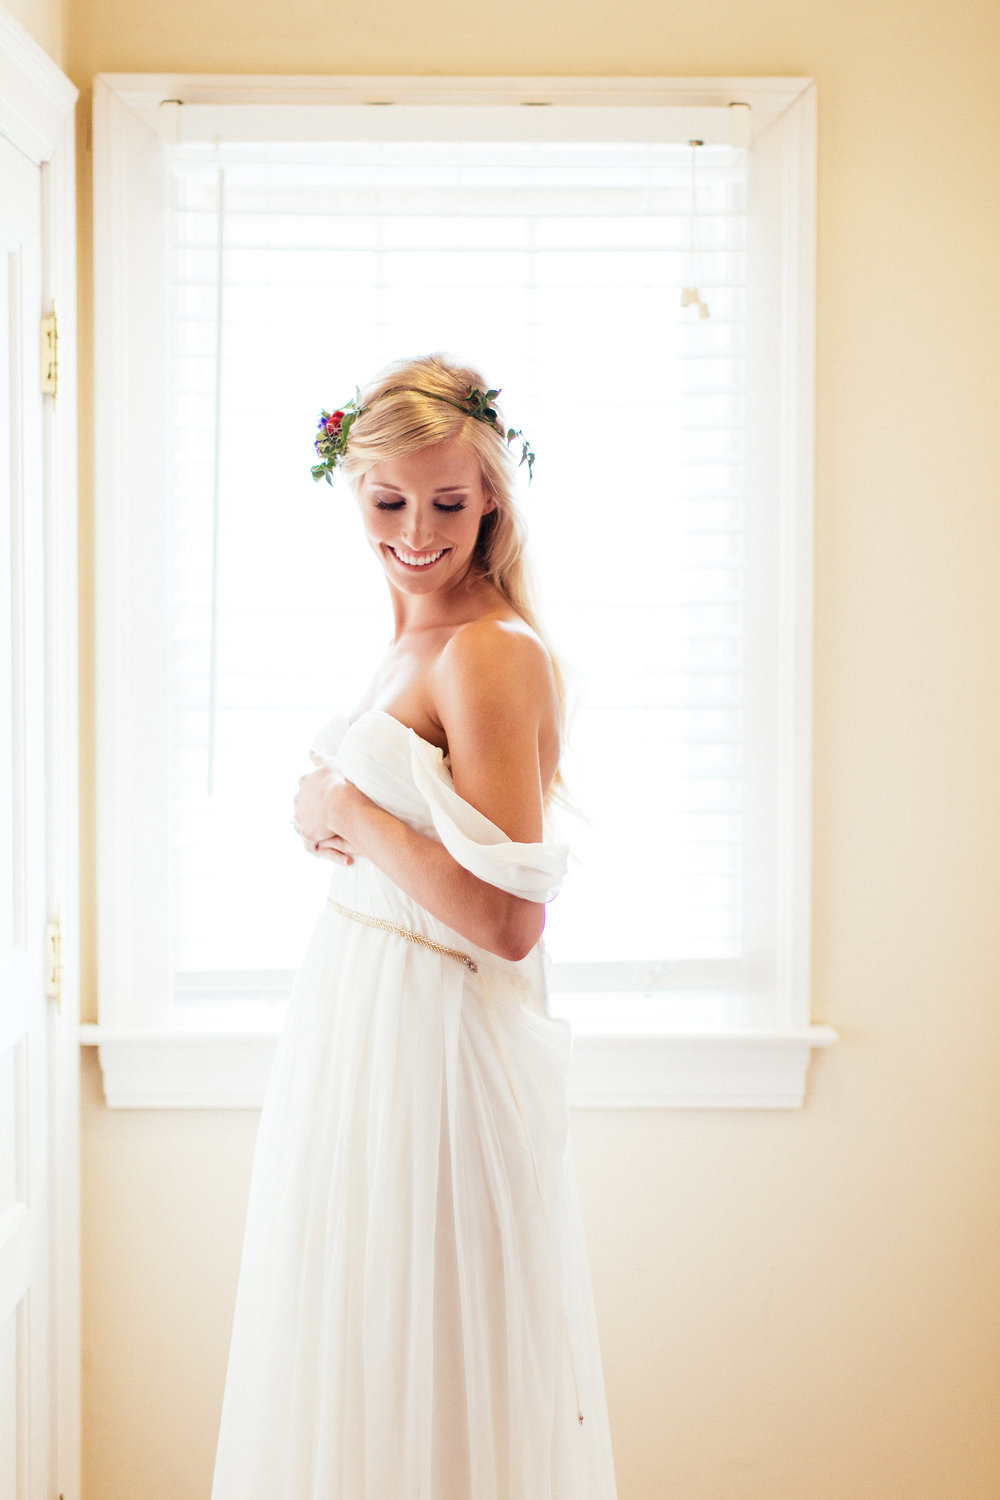 christina-karst-photography-ivory-and-beau-bridal-boutique-sarah-seven-lafayette-boho-bride-boho-bridal-boutique-indie-bridal-boutique-savannah-bridal-boutique-savannah-wedding-dresses-savannah-bridal-gowns-4.jpg